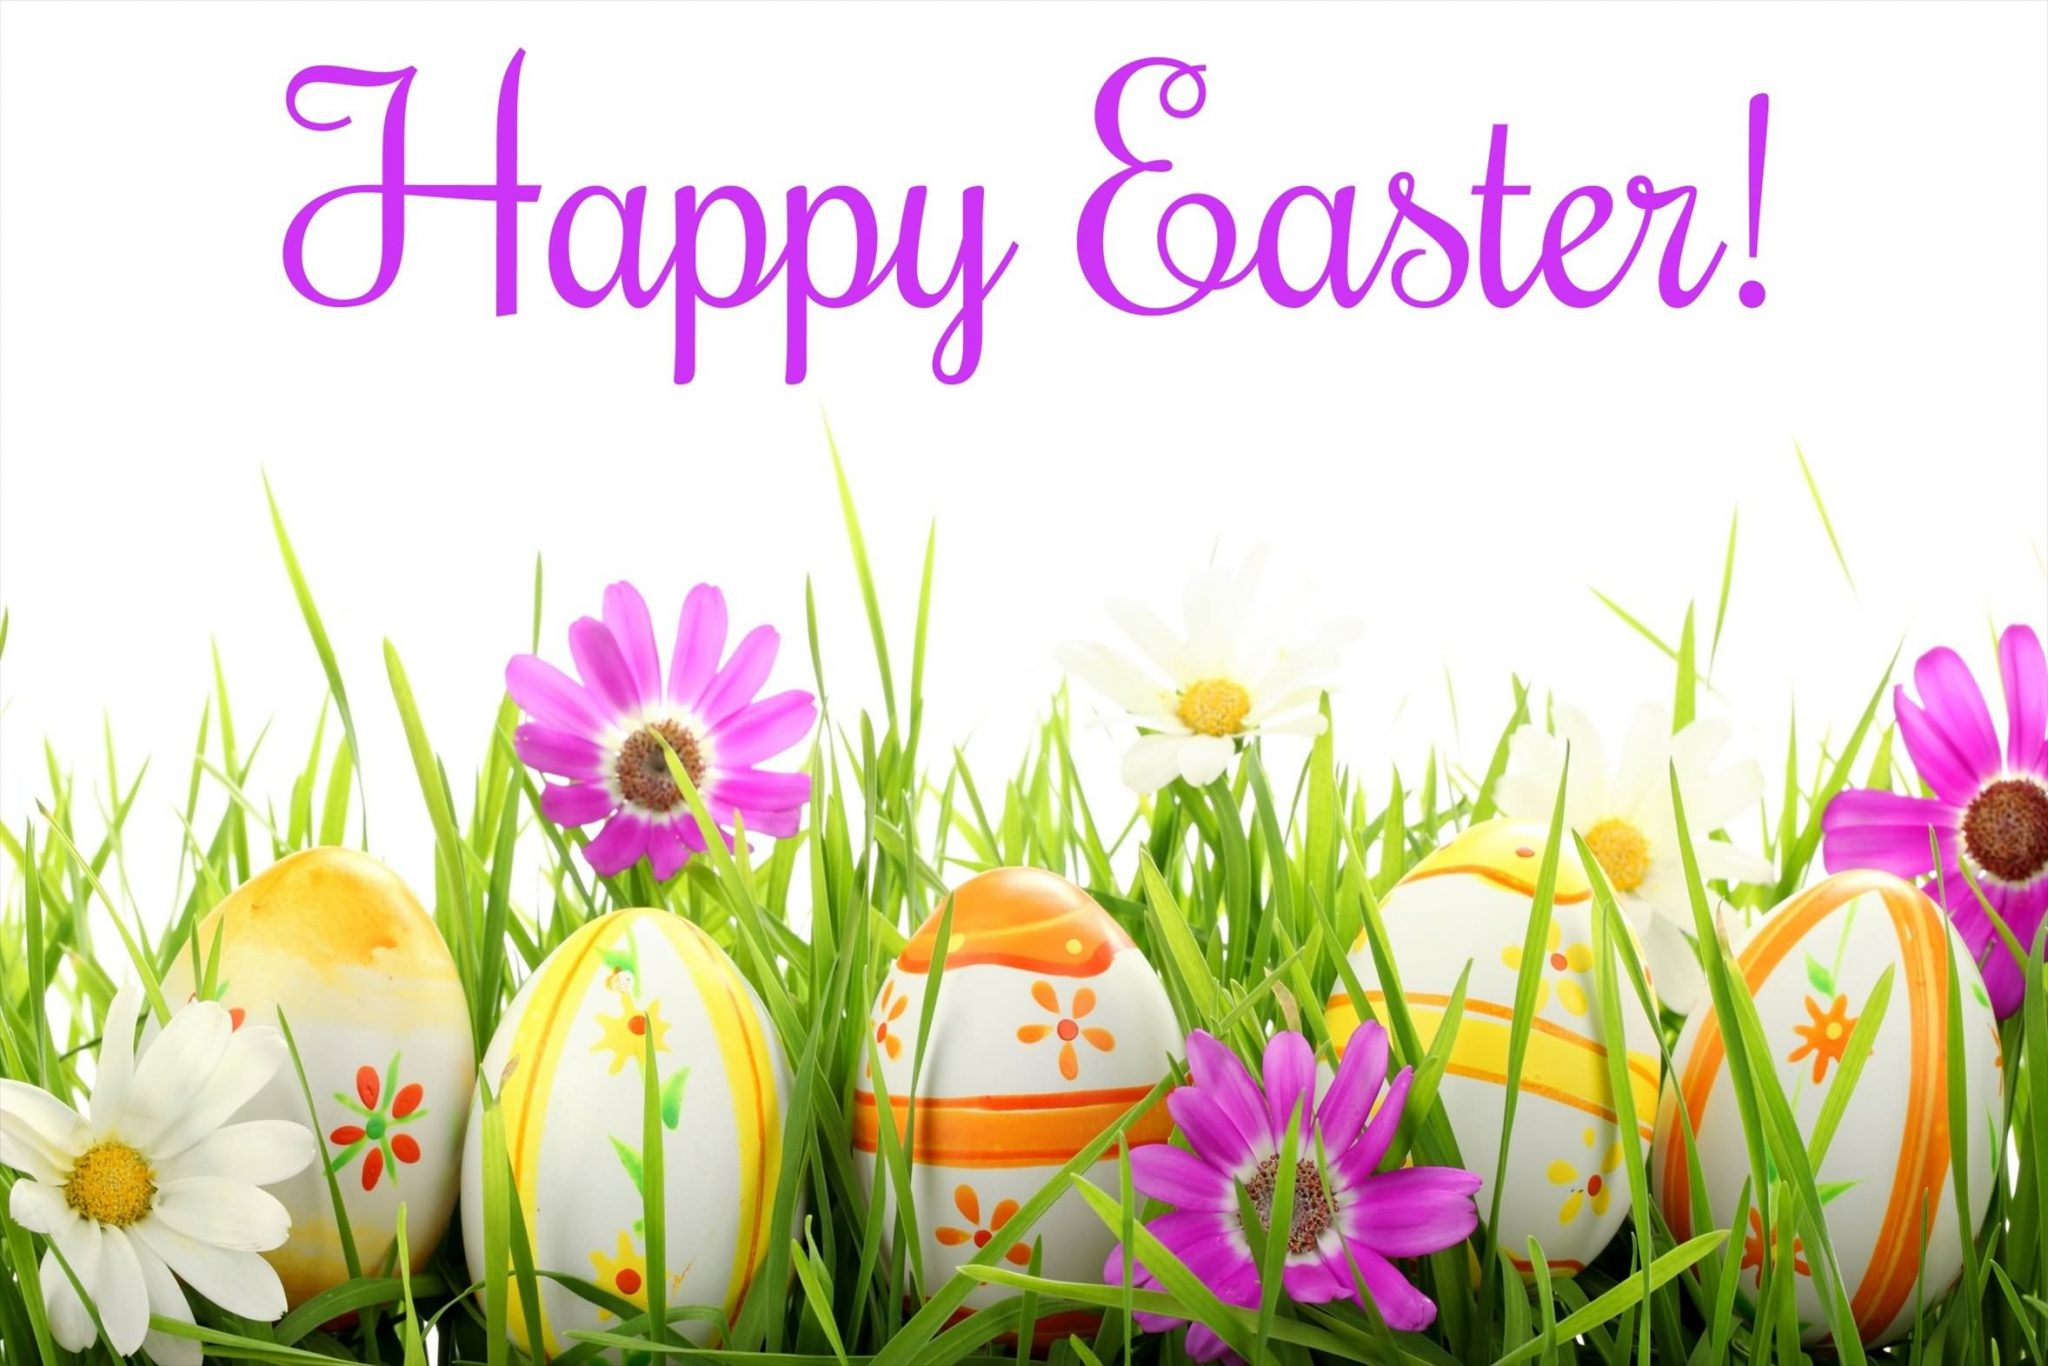 Happy Easter Sunday Weekend Images Pictures HD Wallpapers